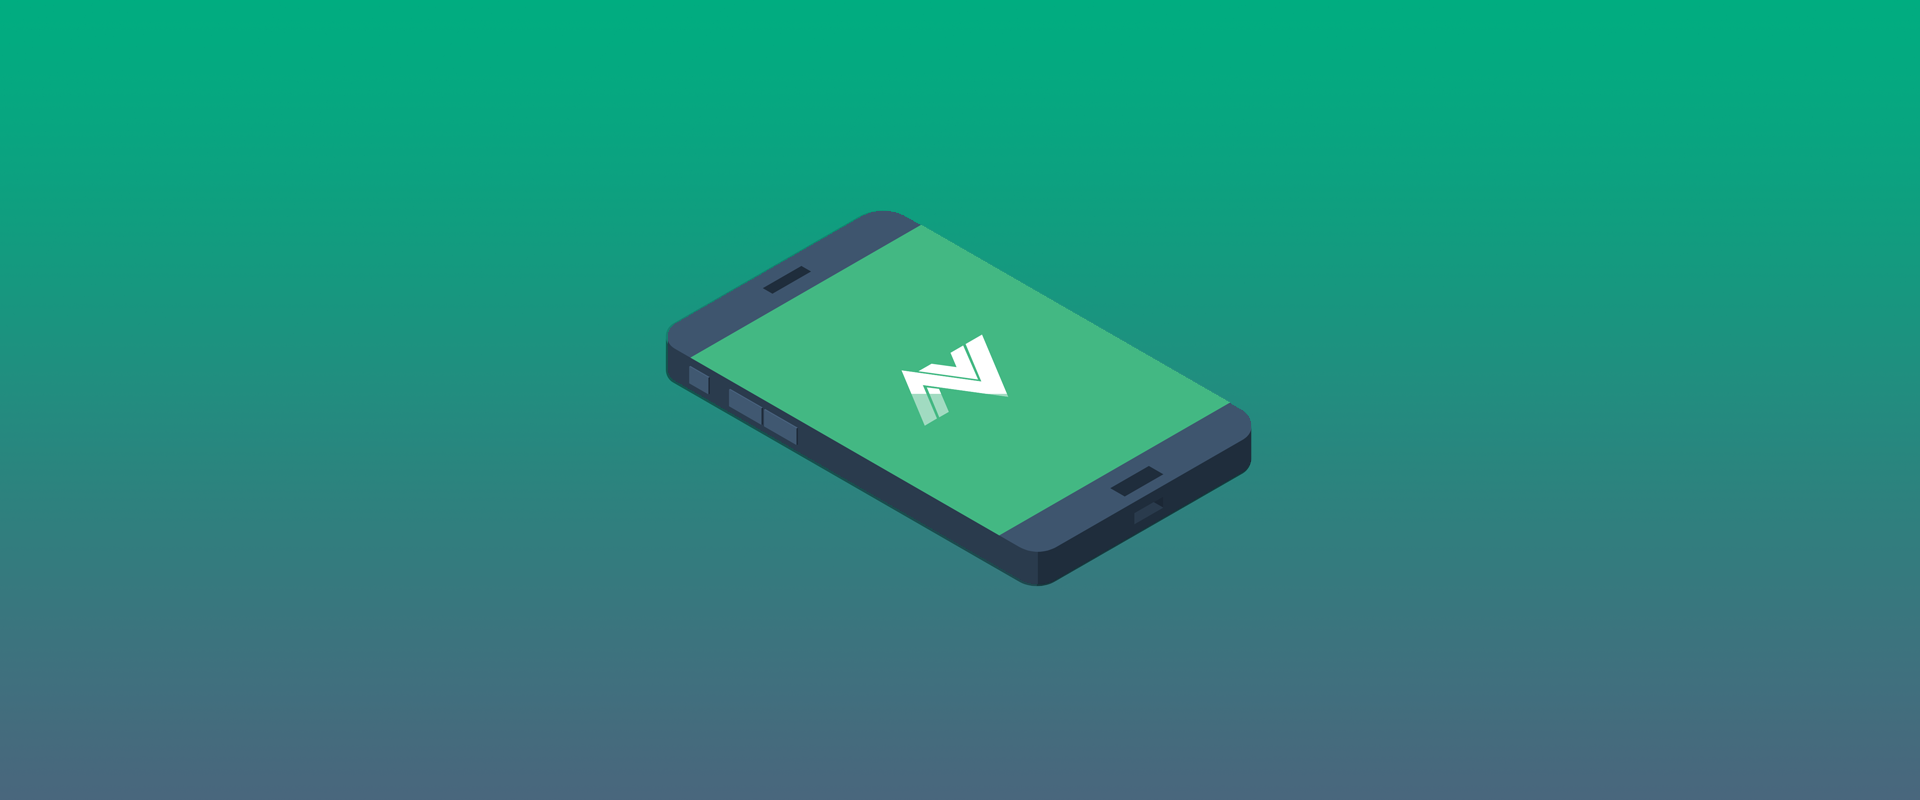 Lessons Learned on Writing Apps with NativeScript VueJS